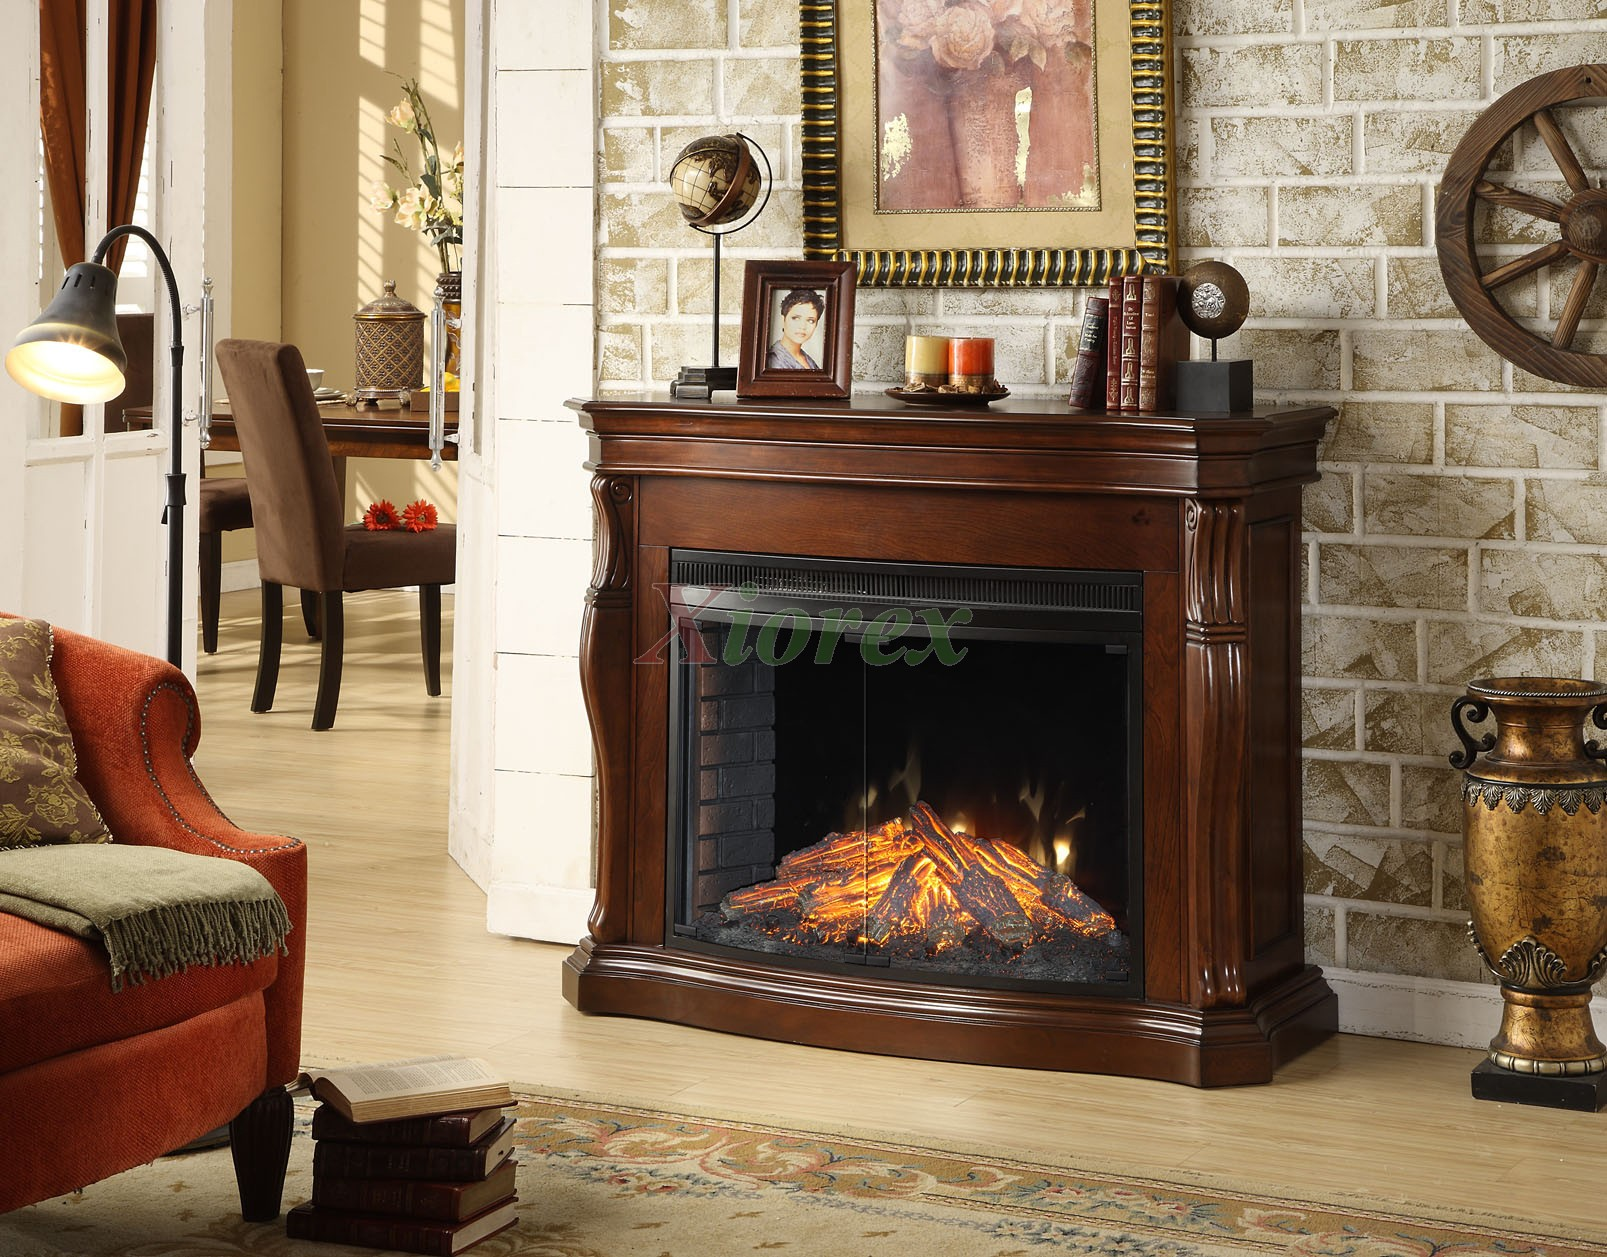 Shop Greenway Muskoka fireplaces